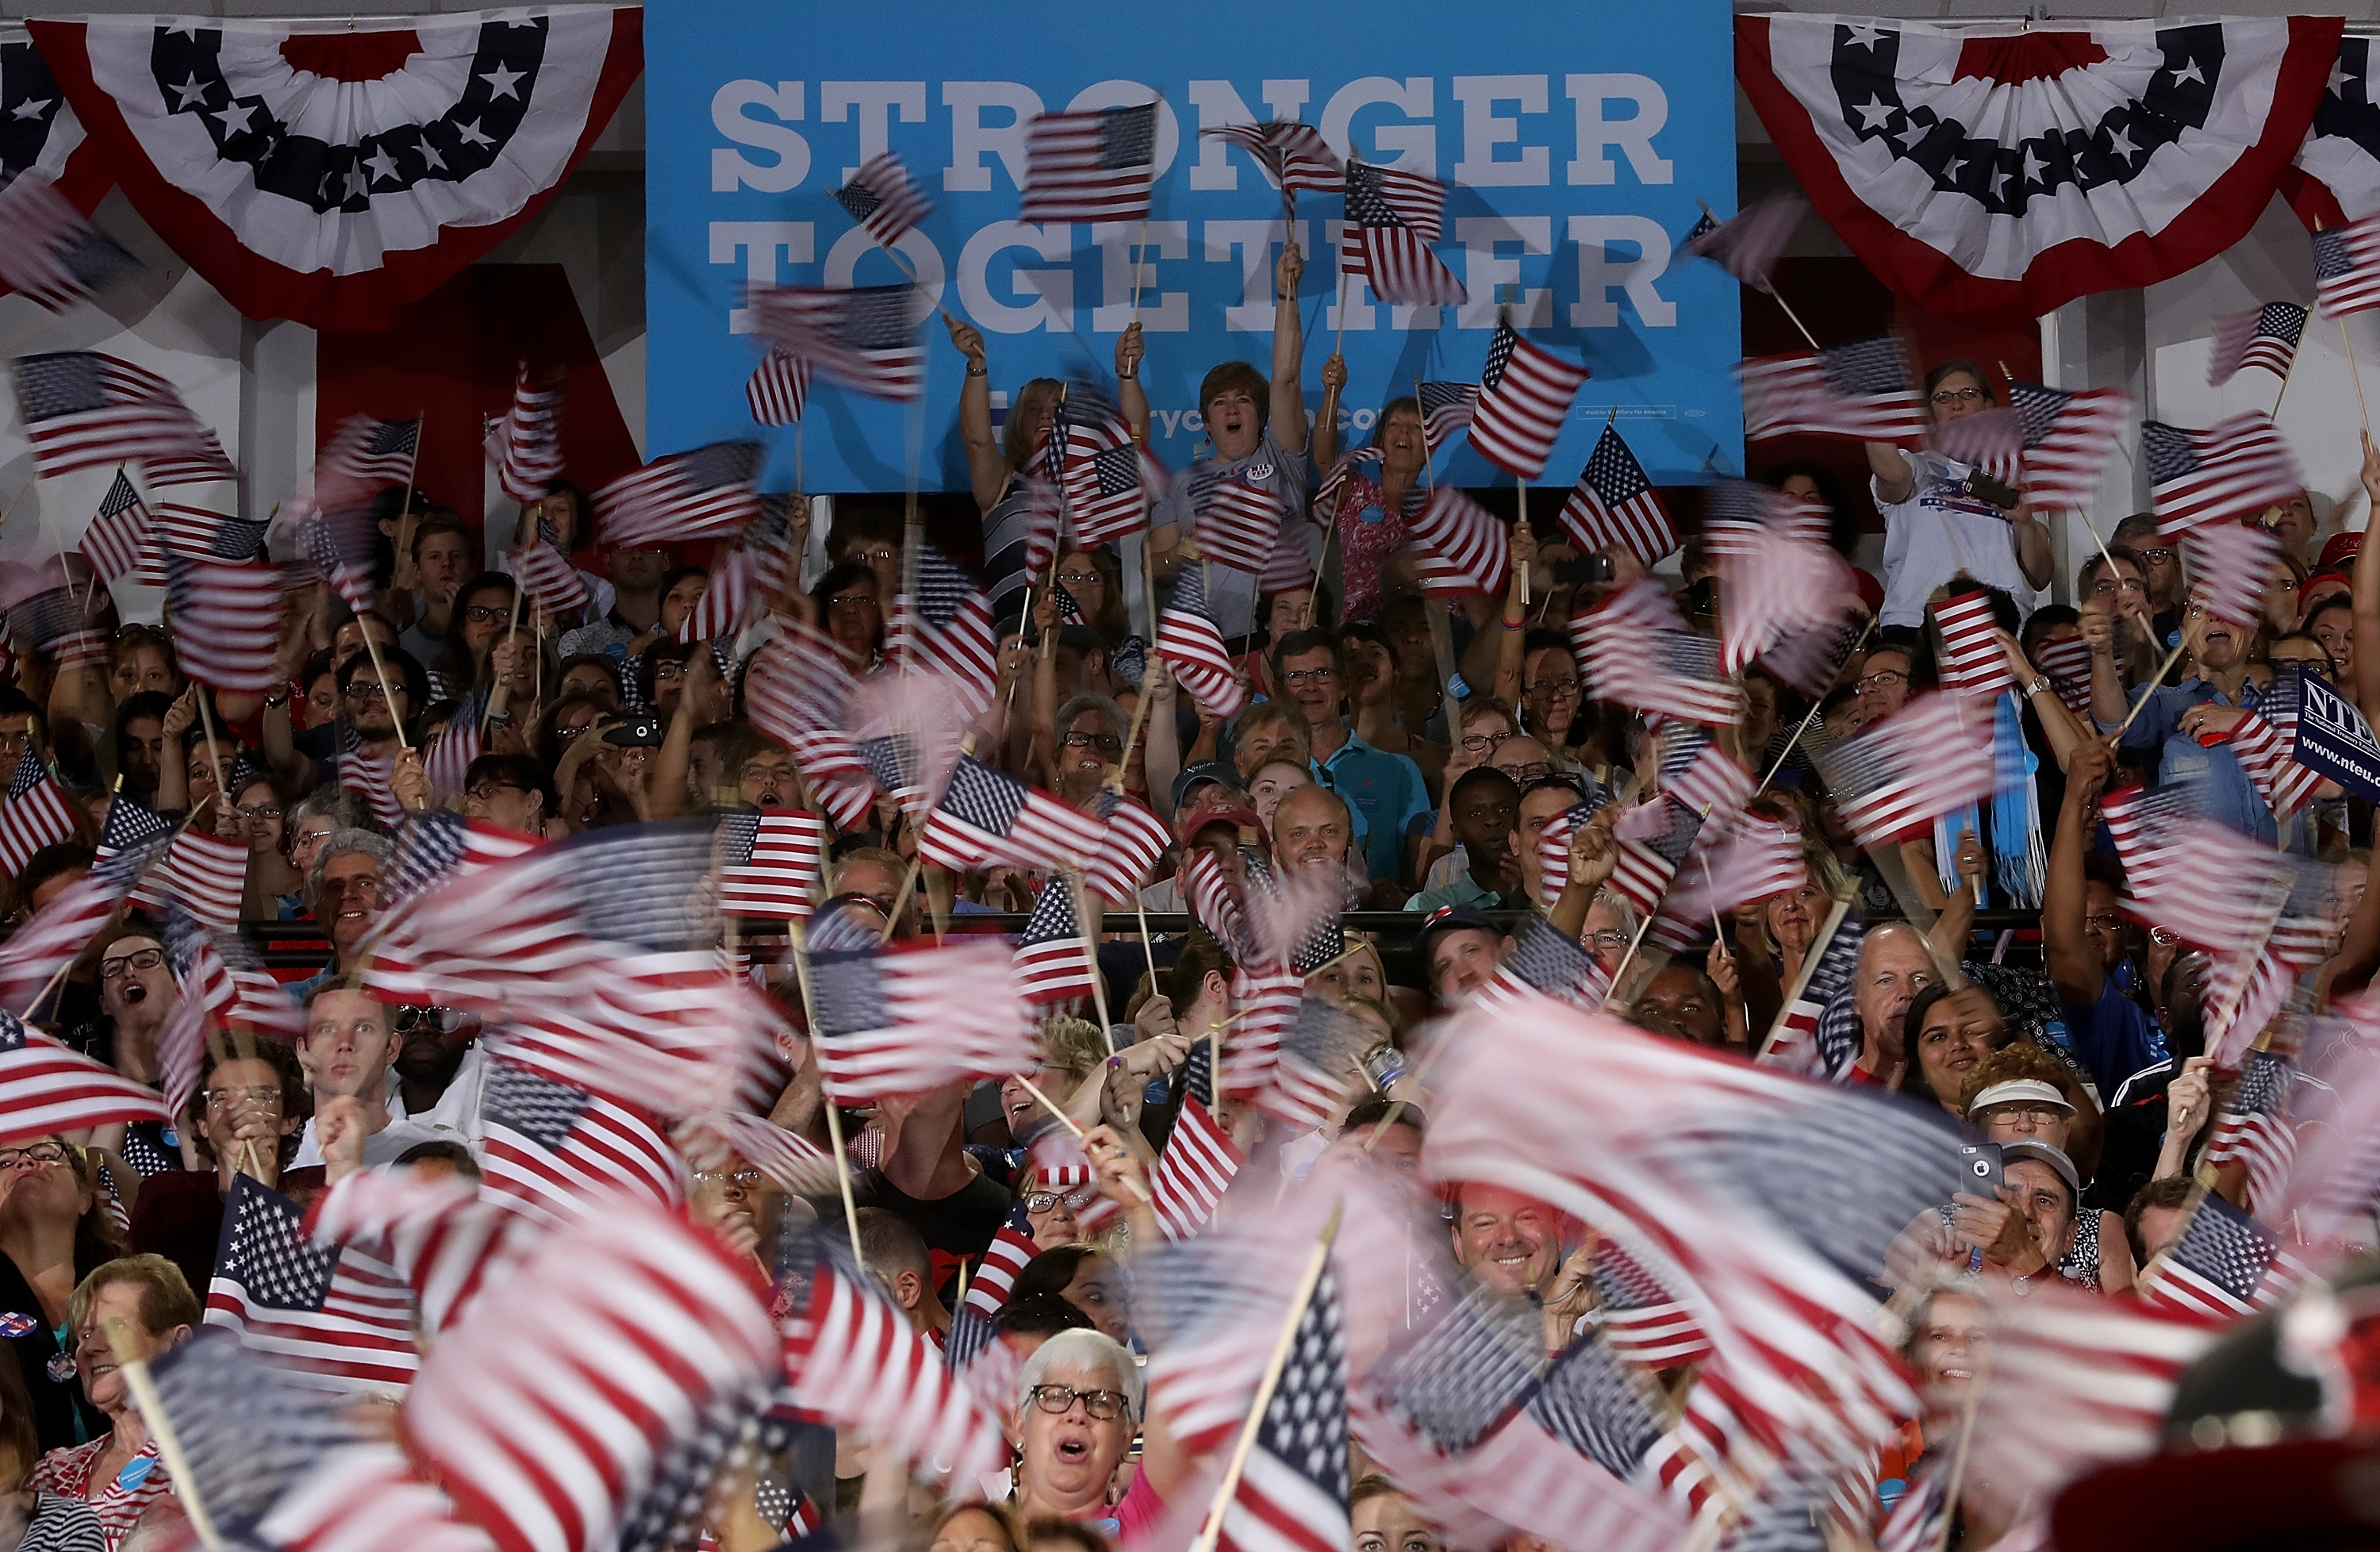 Supporters wave flags during a campaign rally with democratic presidential nominee former Secretary of State Hillary Clinton and democratic vice presidential nominee U.S. Sen. Tim Kaine at Temple University on July 29, 2016 in Philadelphia. (Justin Sullivan/Getty Images)